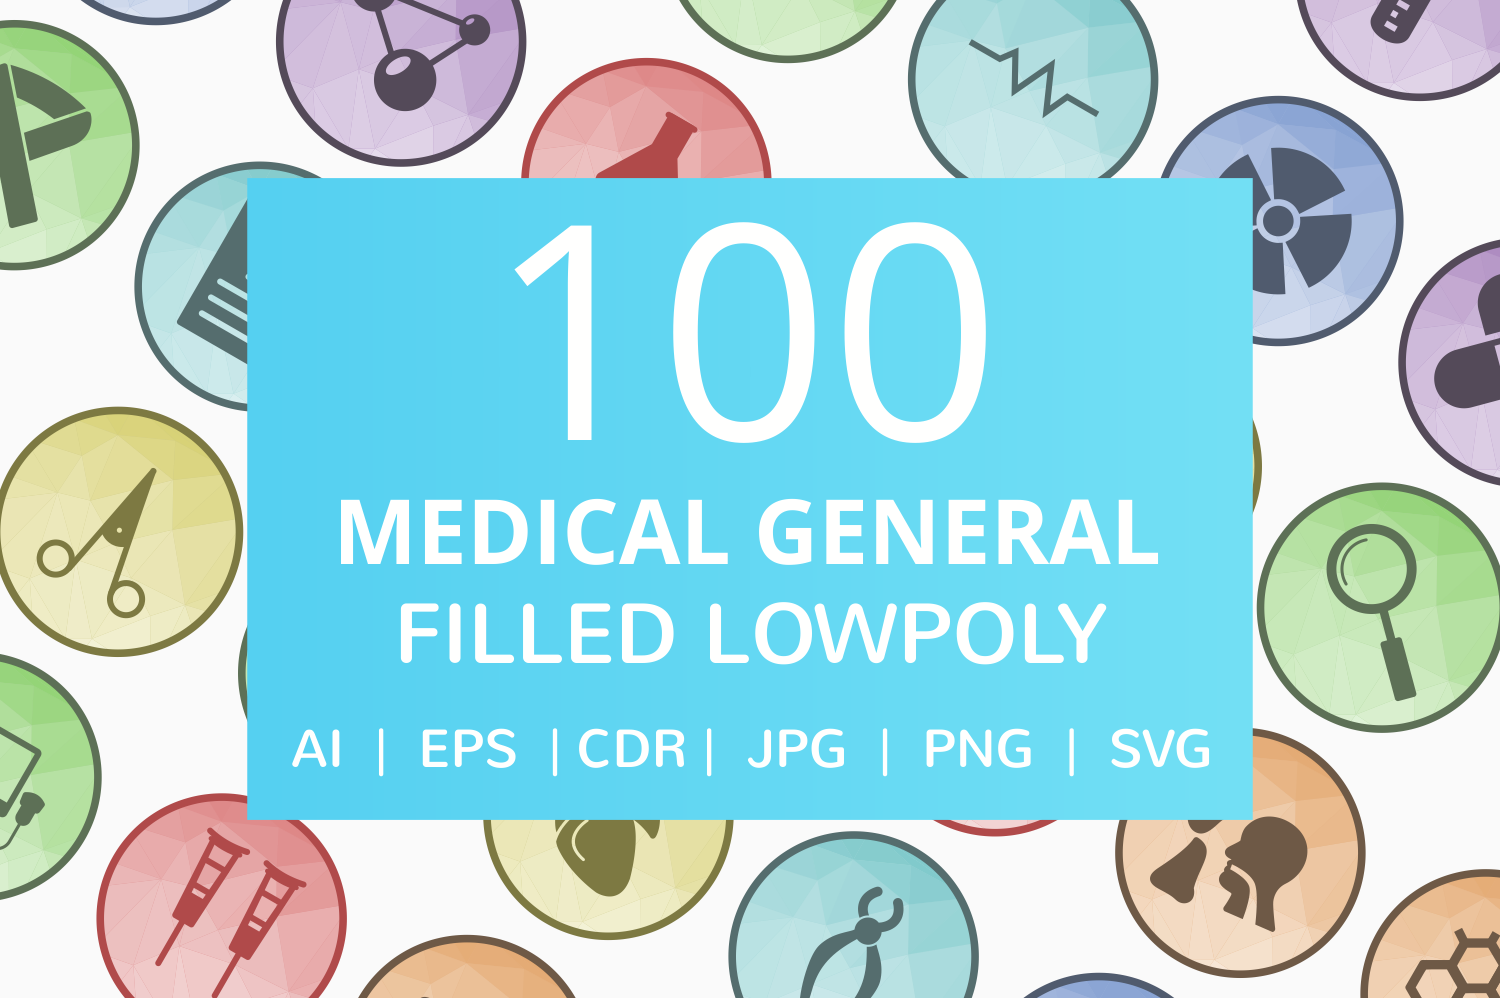 100 Medical General Filled Low Poly Icons example image 1